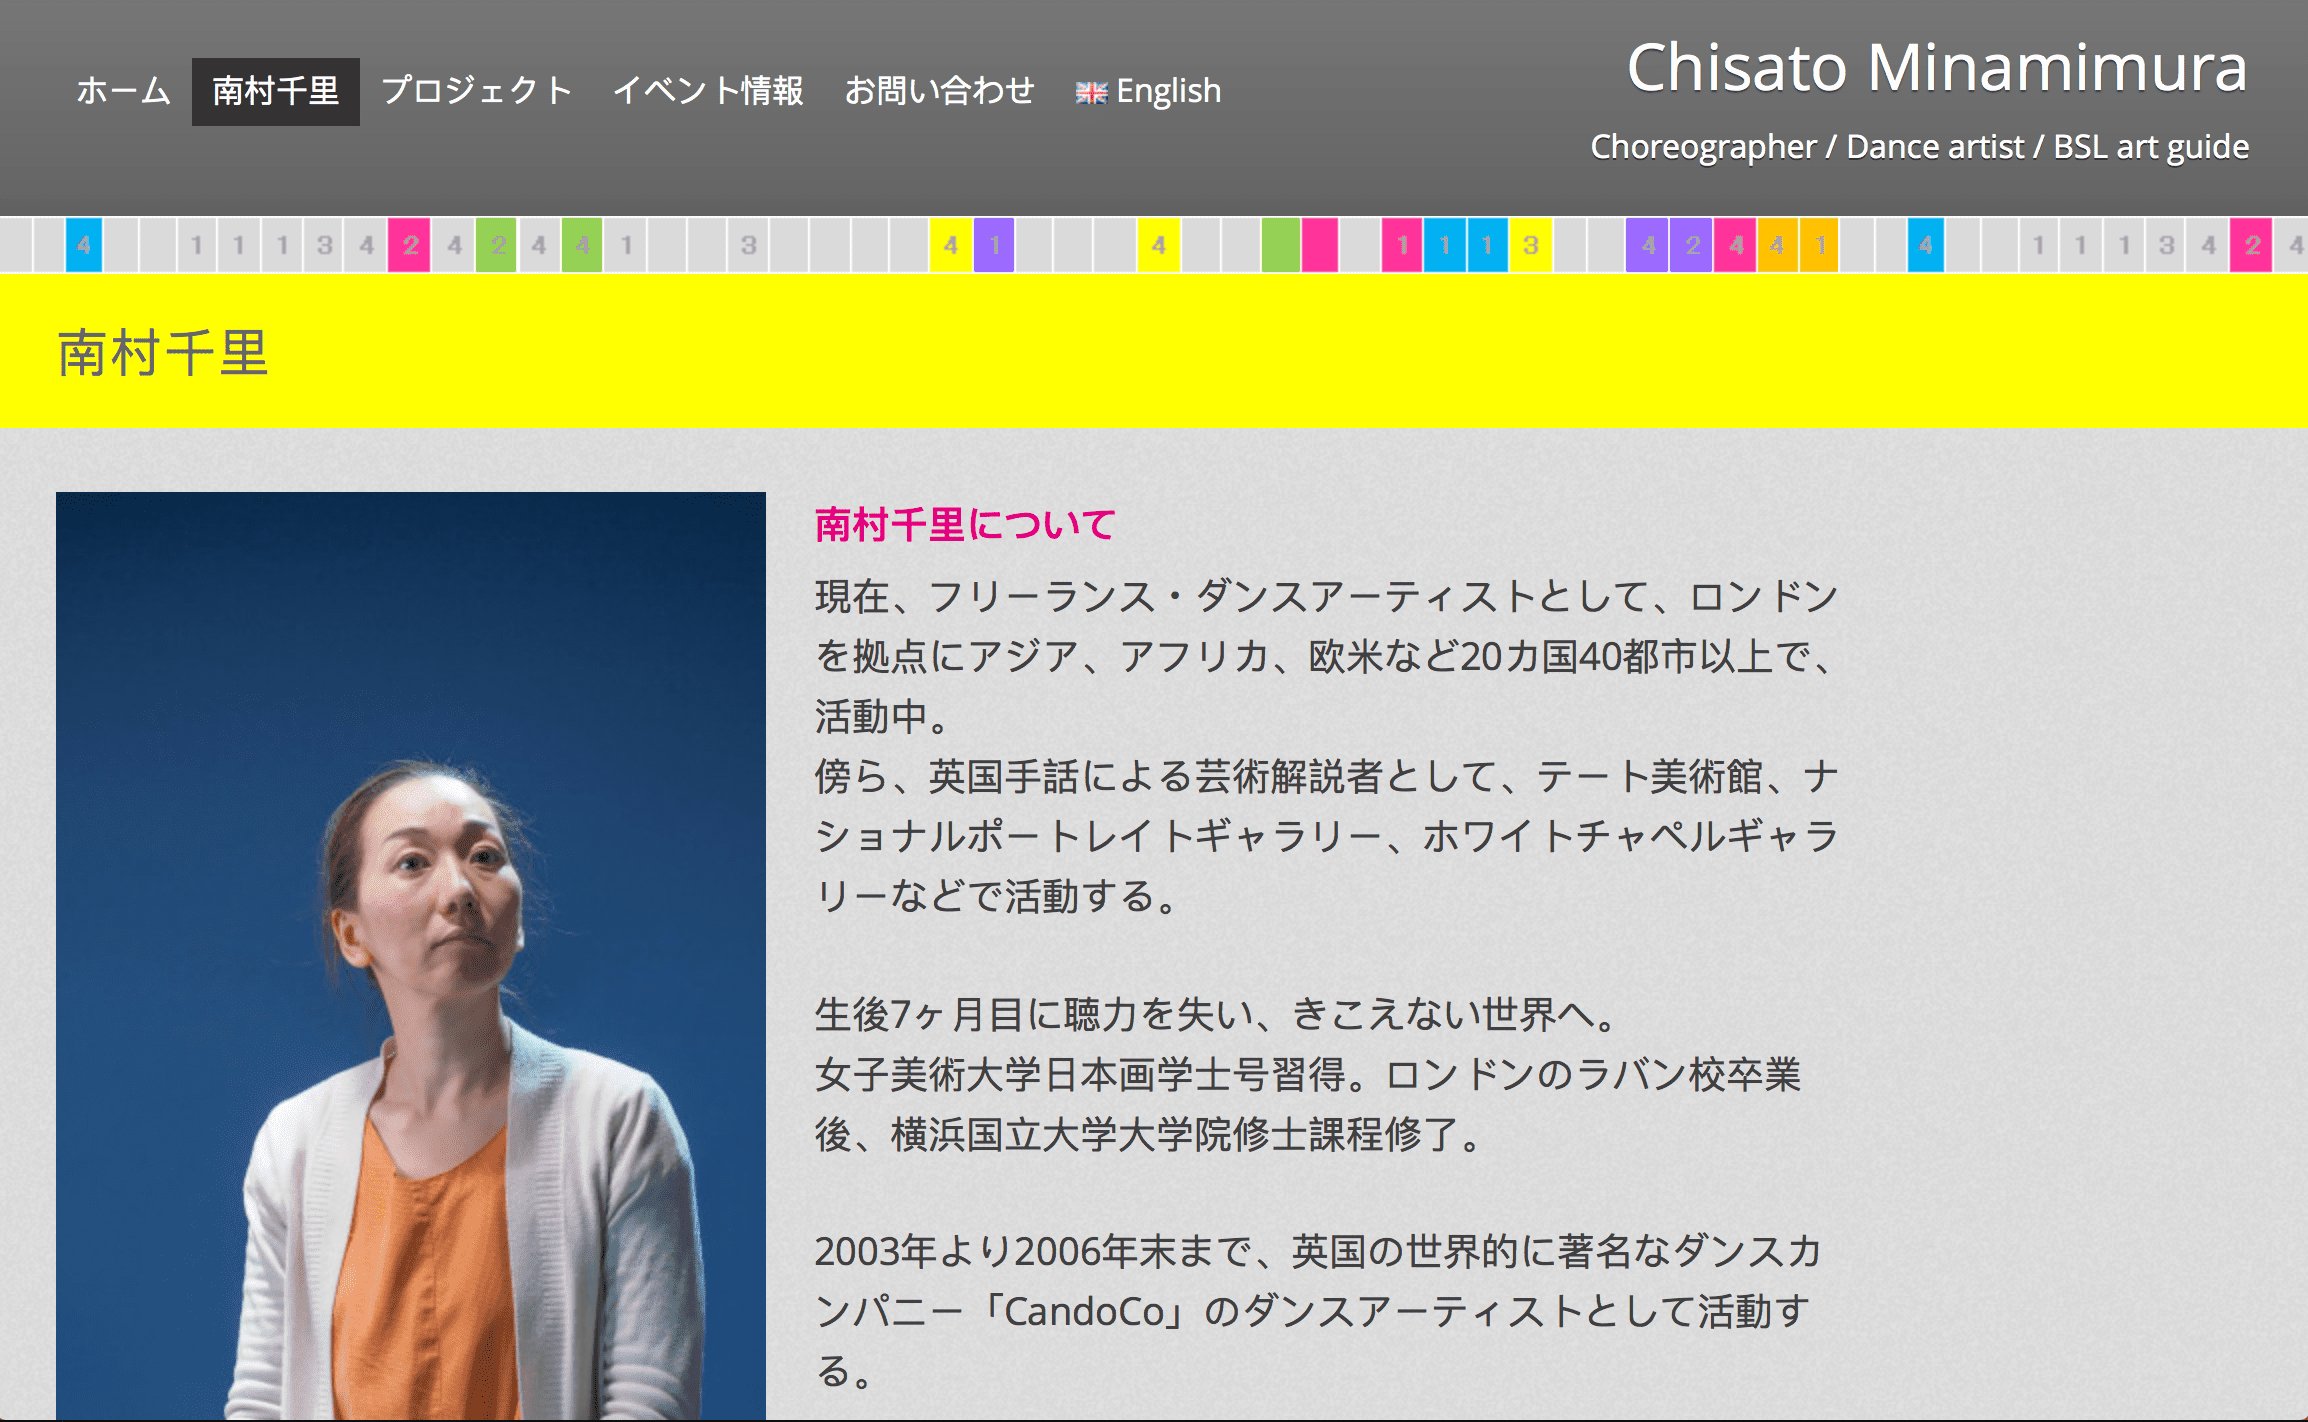 About Chisato in Japanese